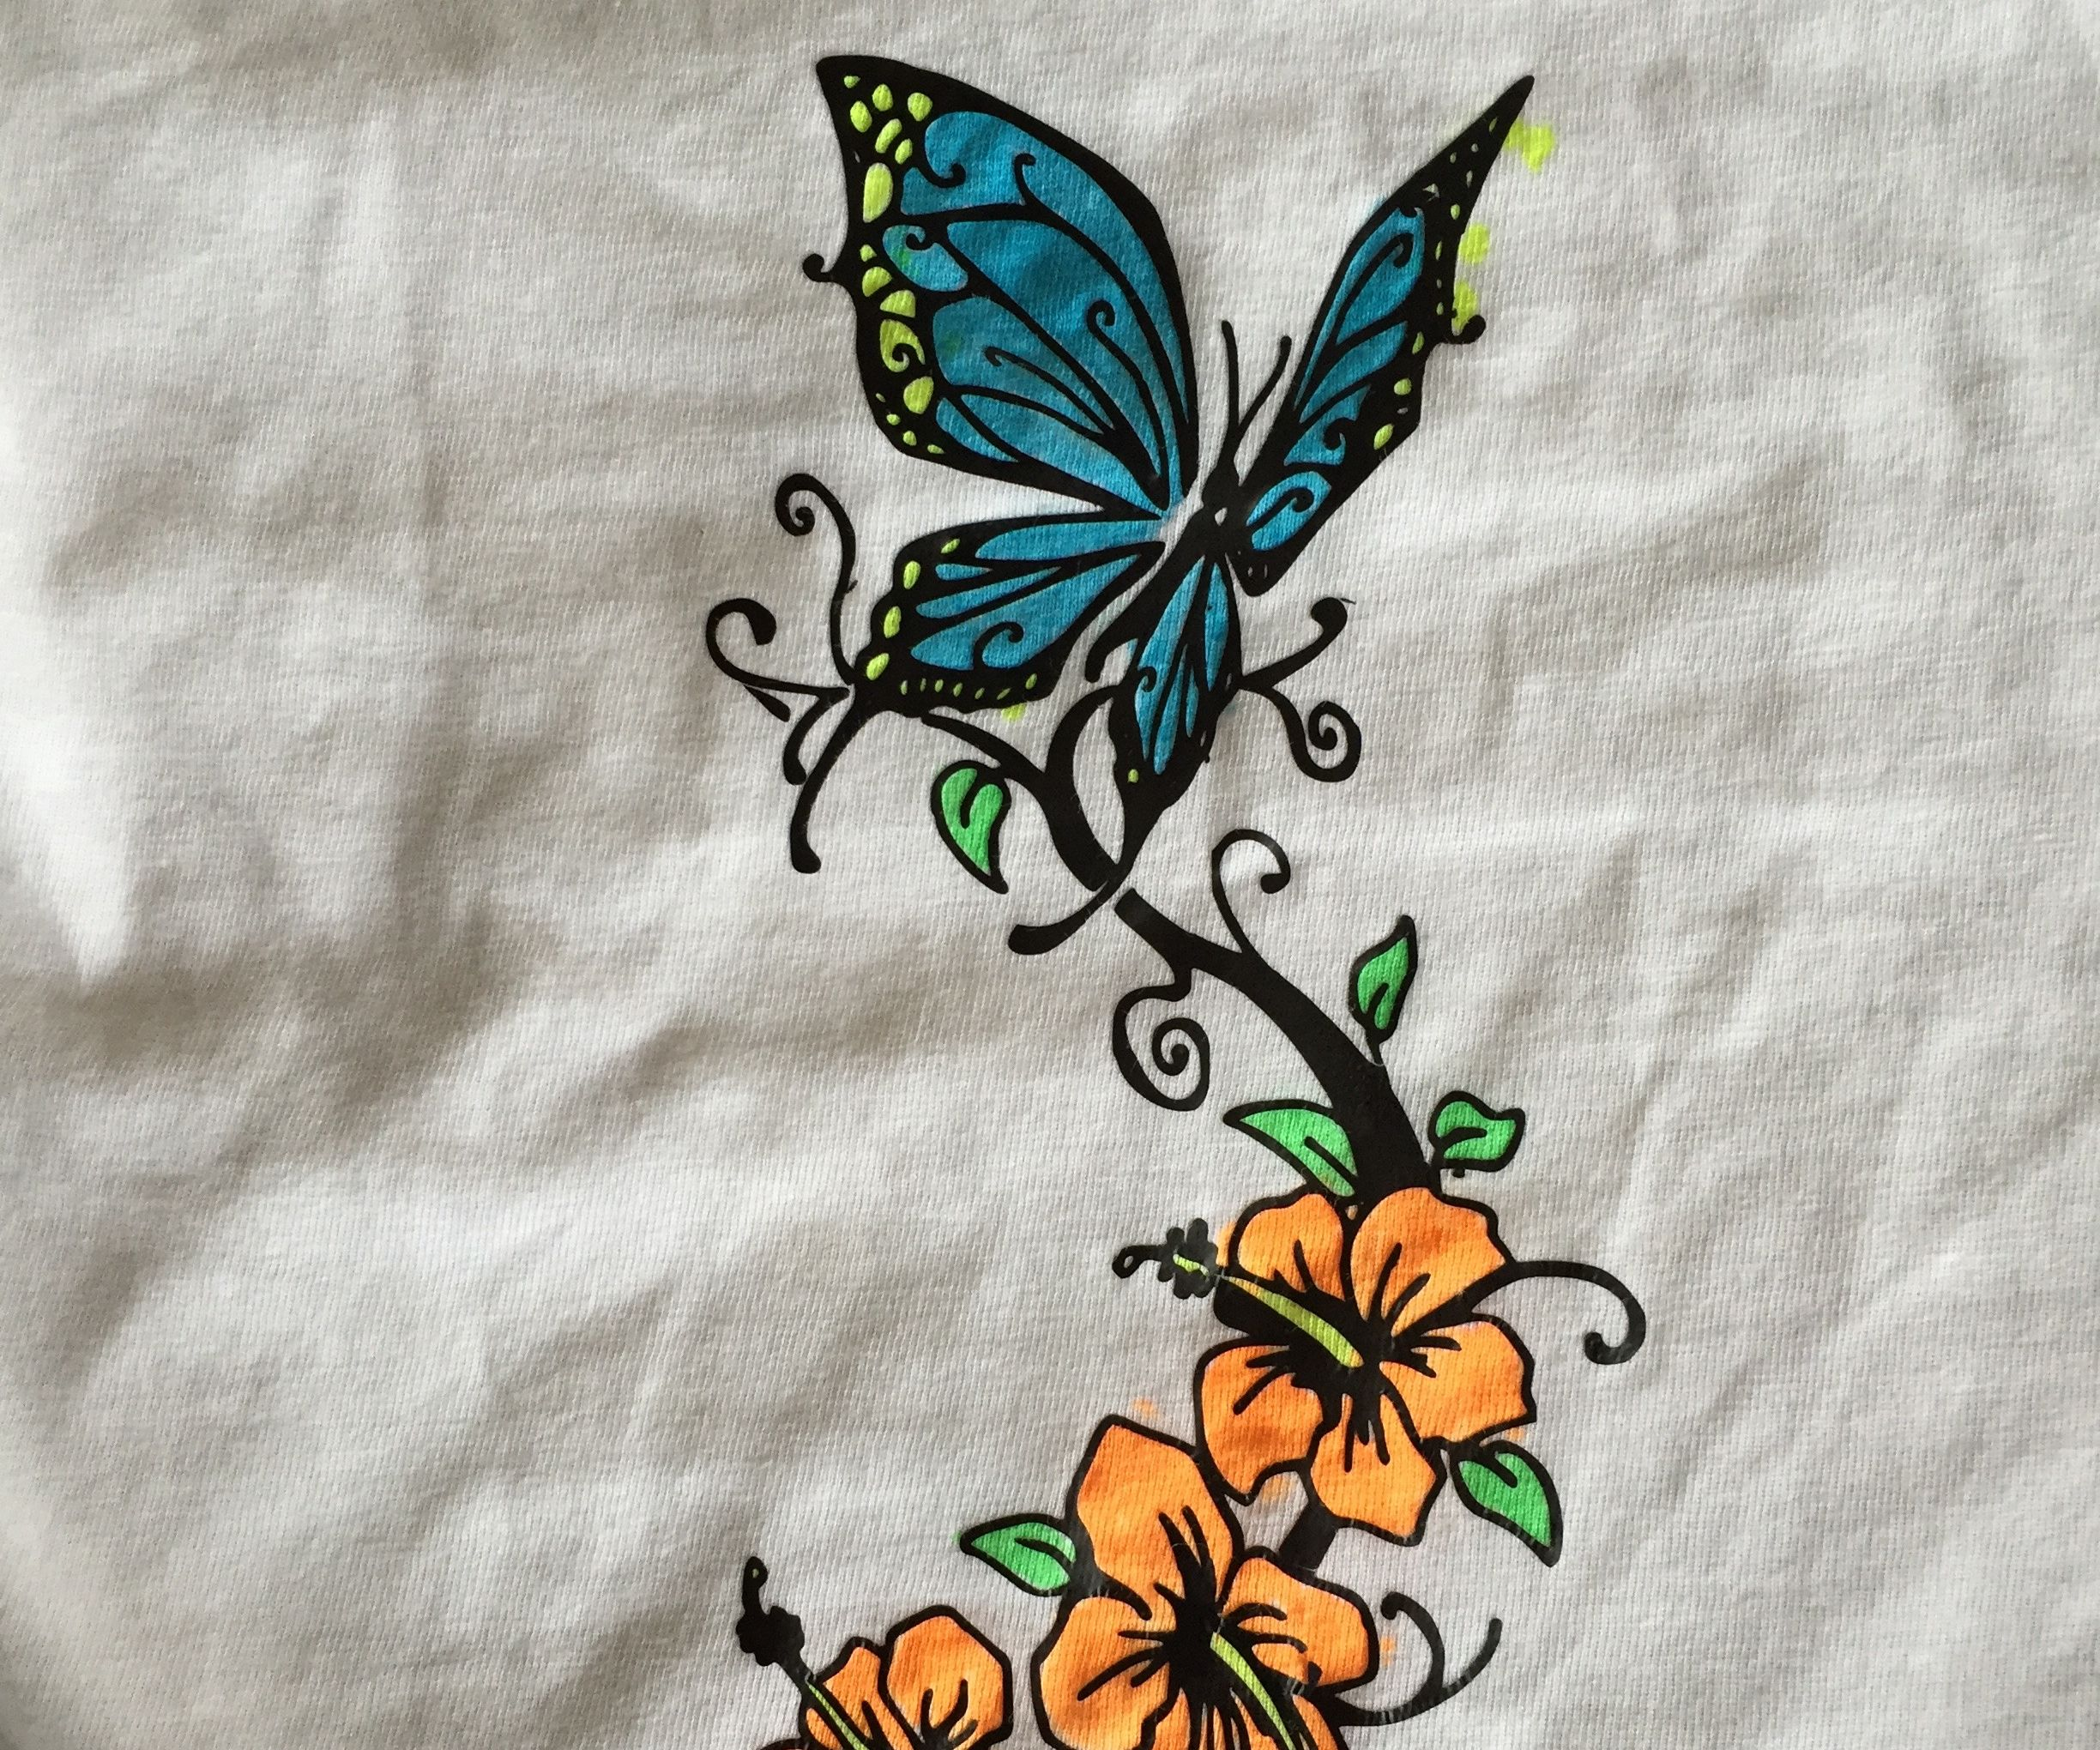 Kid's Coloring on a T-shirt